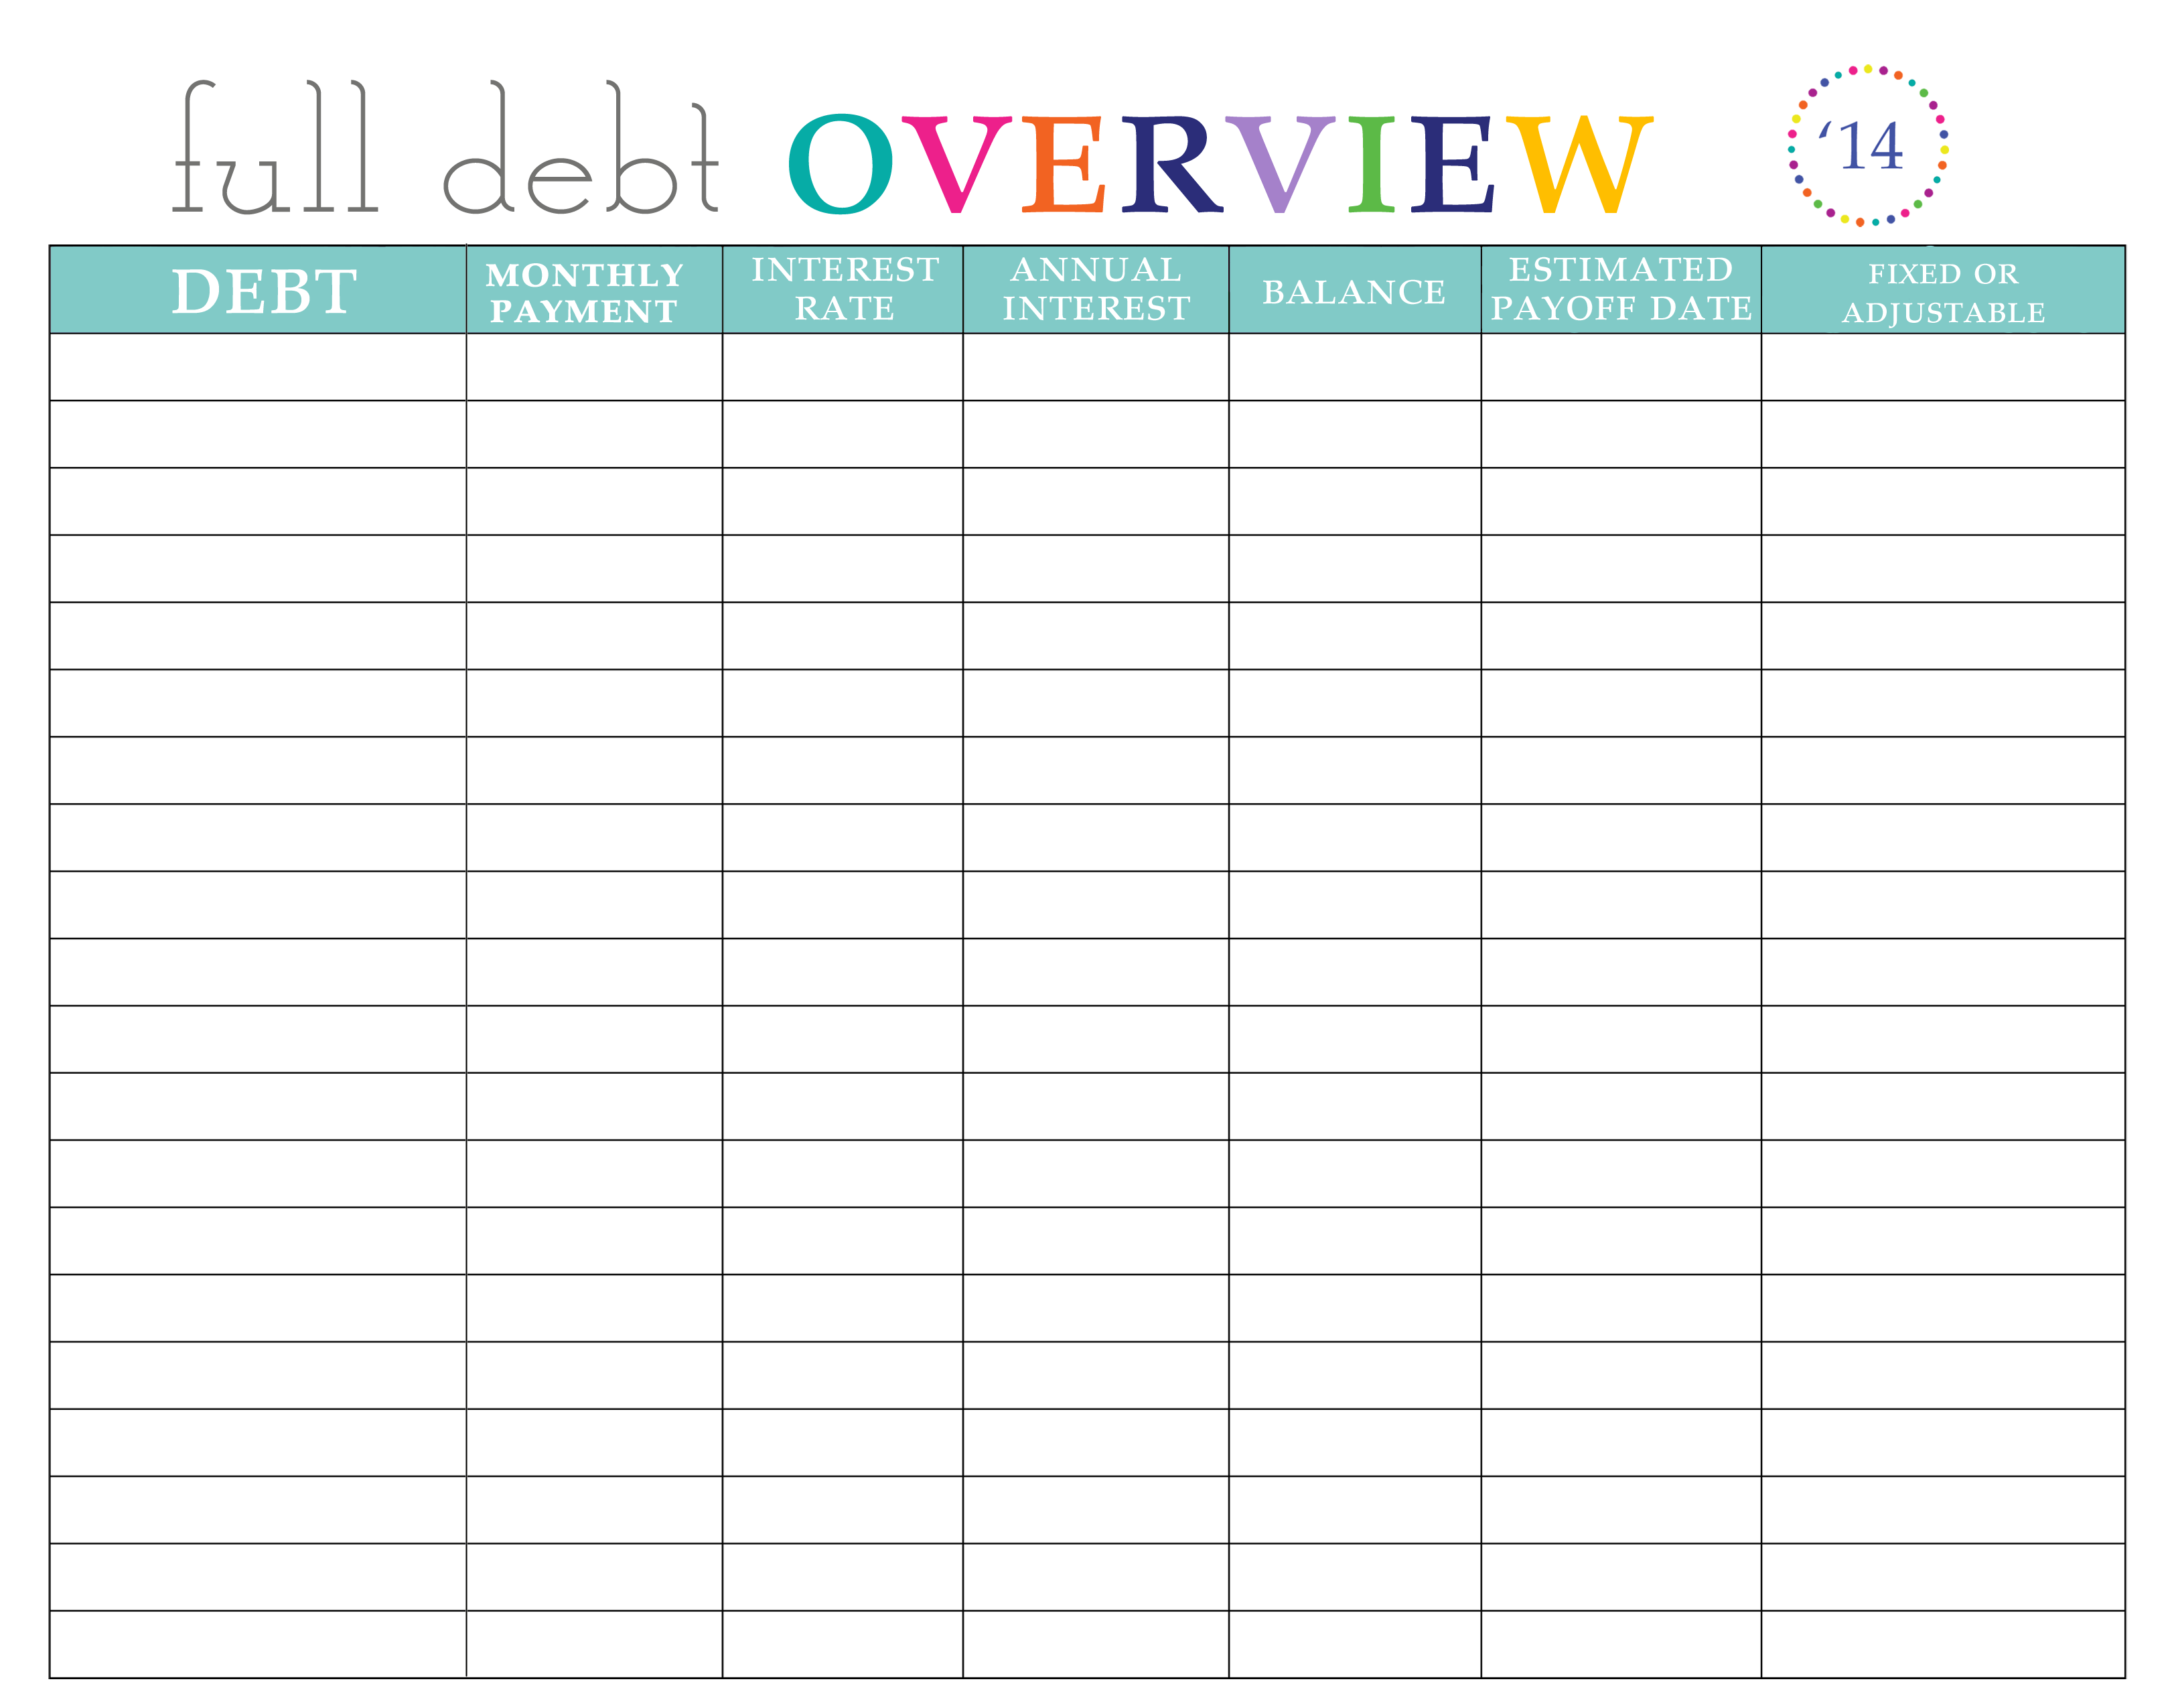 loan calculator excel reducing balance